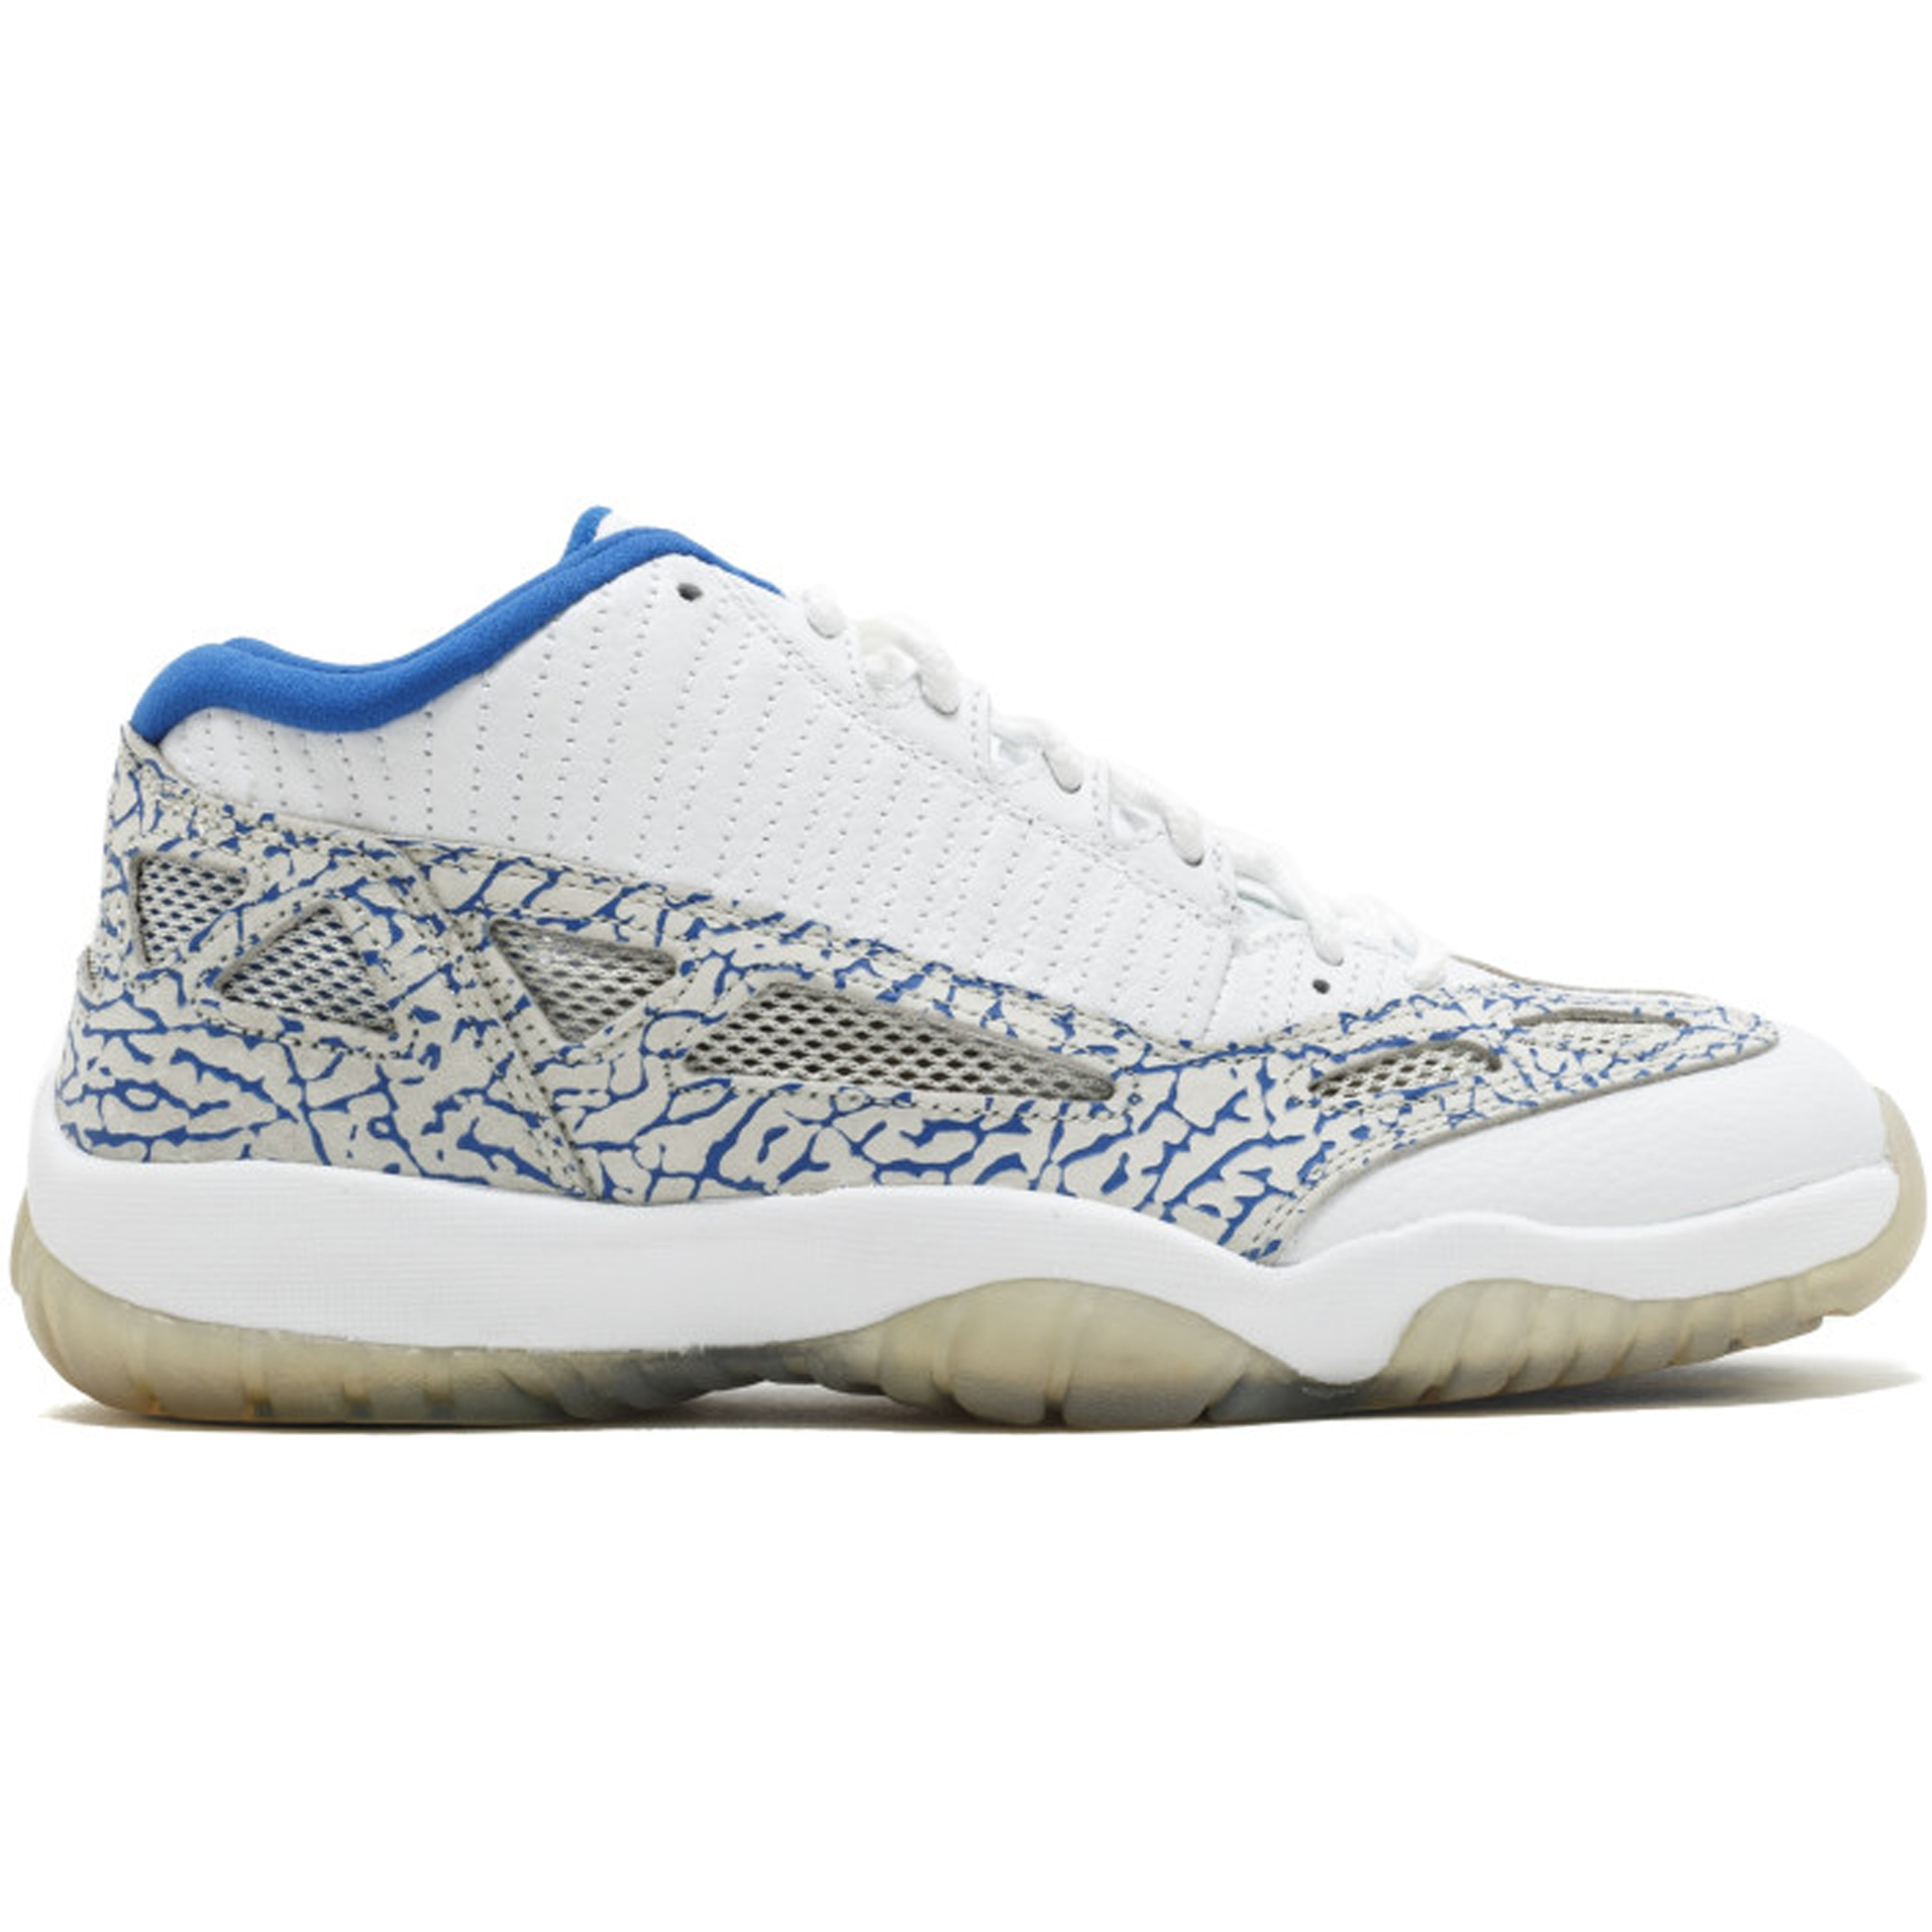 Jordan 11 Retro Low IE White Argon Blue (306008-172)